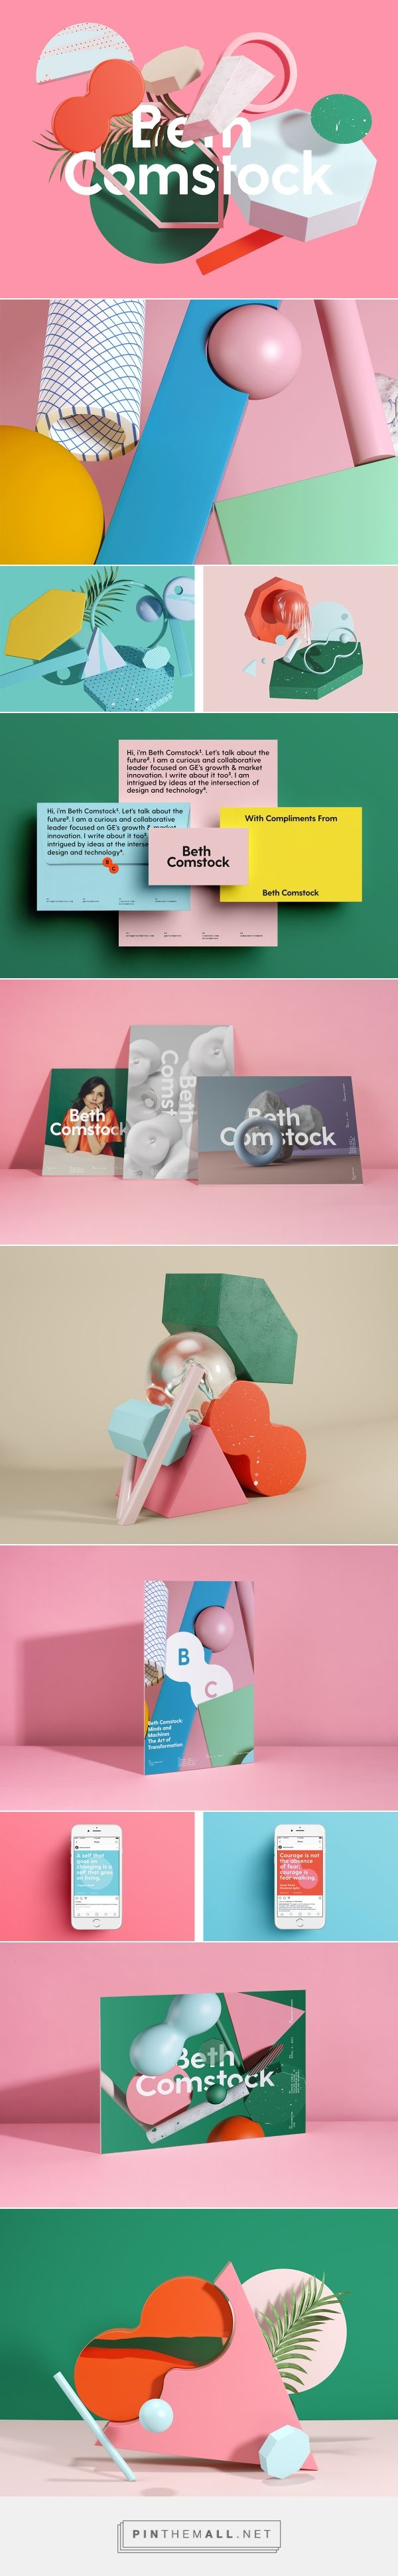 Beth Comstock Brand Identity on Behance... - a grouped images picture - Pin Them All